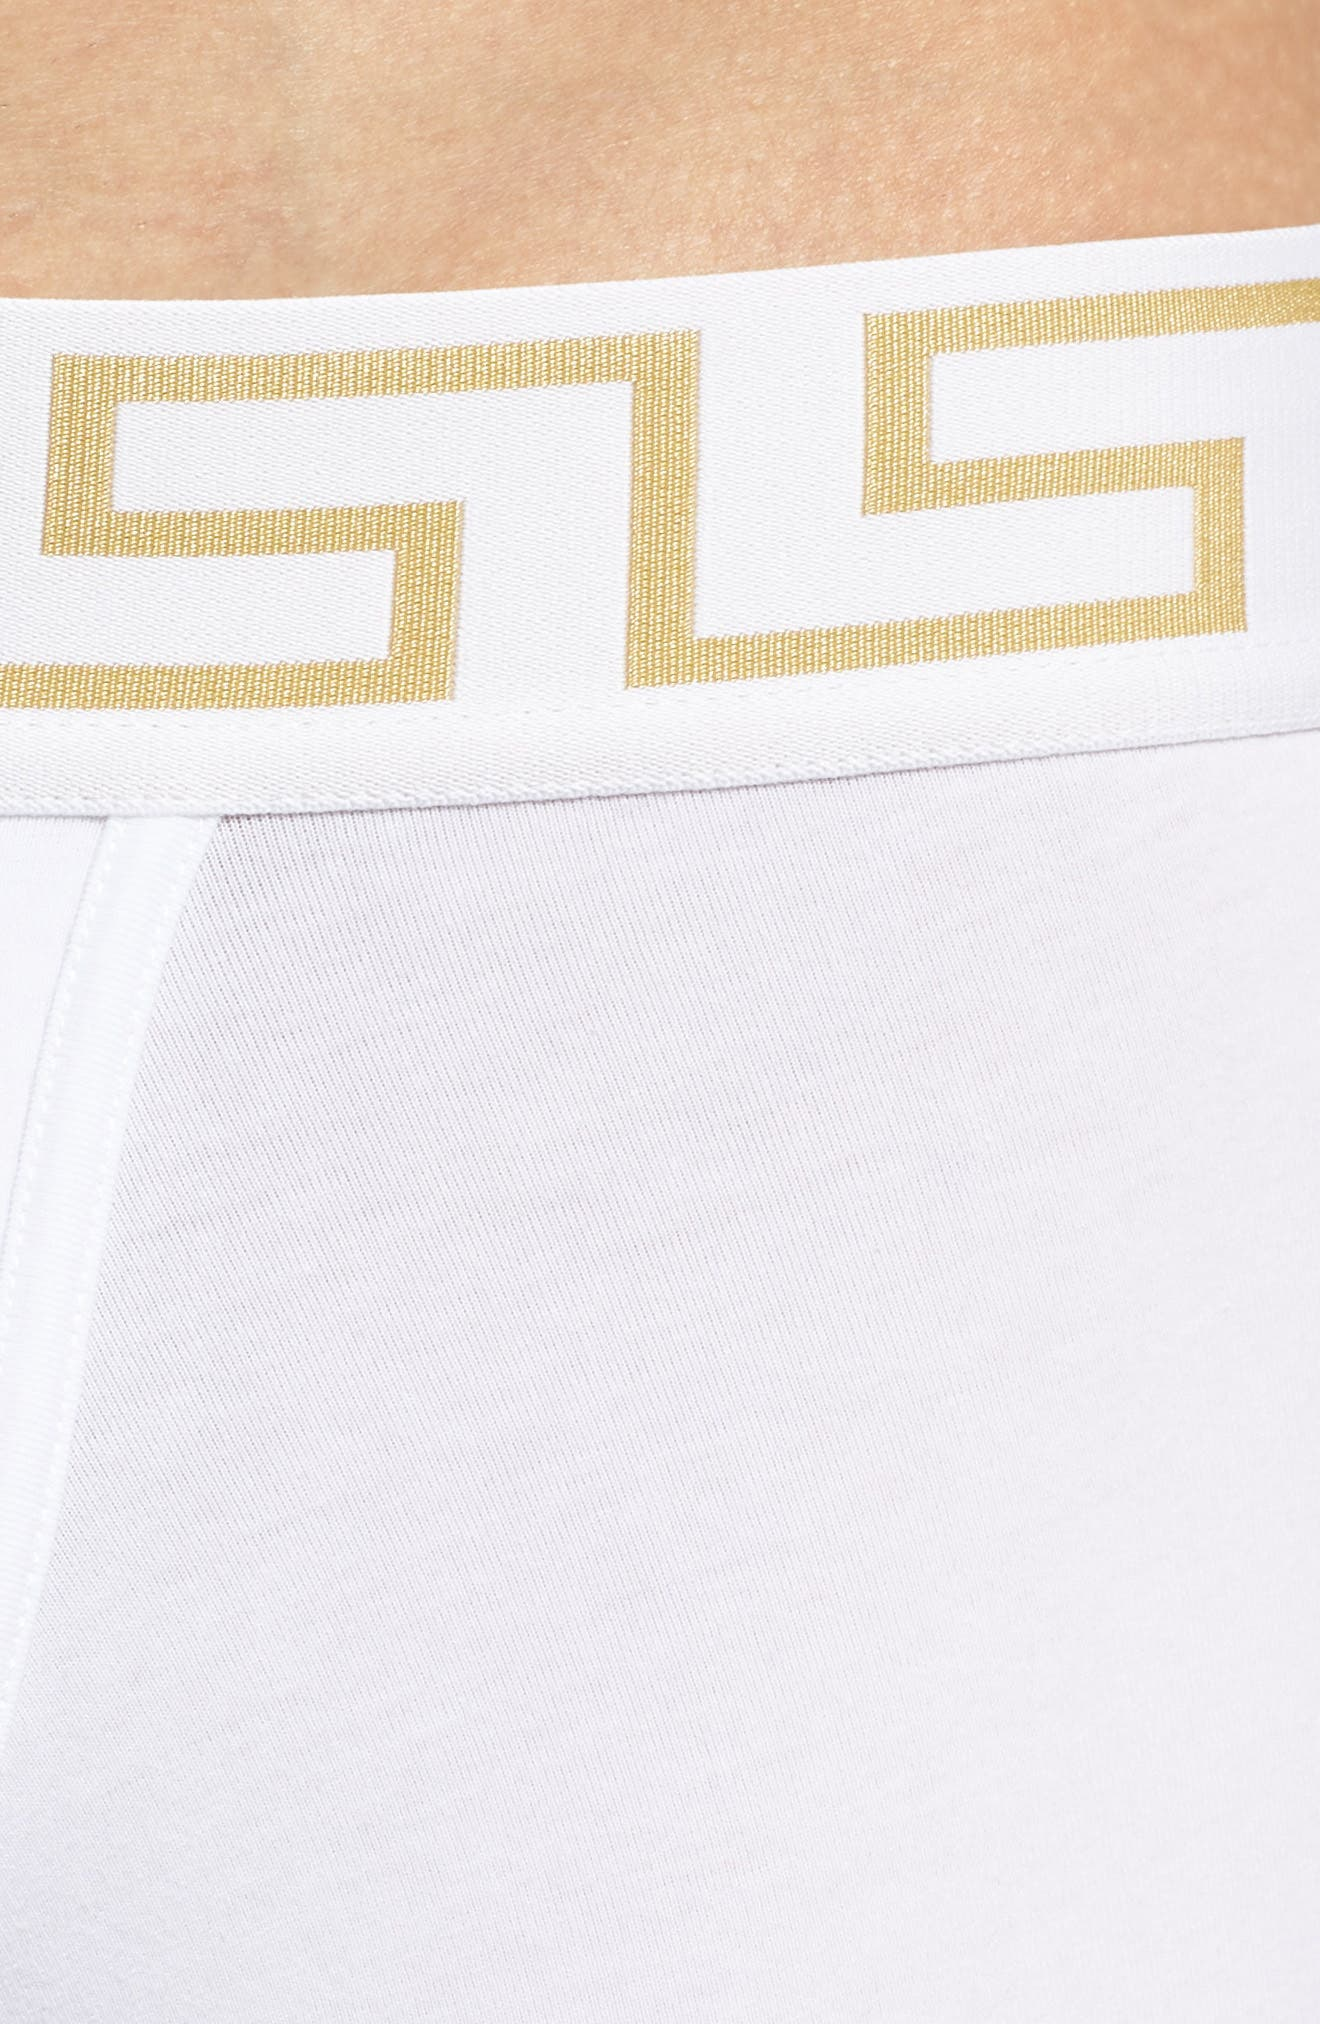 Versace Collection Long Trunks,                             Alternate thumbnail 4, color,                             White/ Greek/ Gold